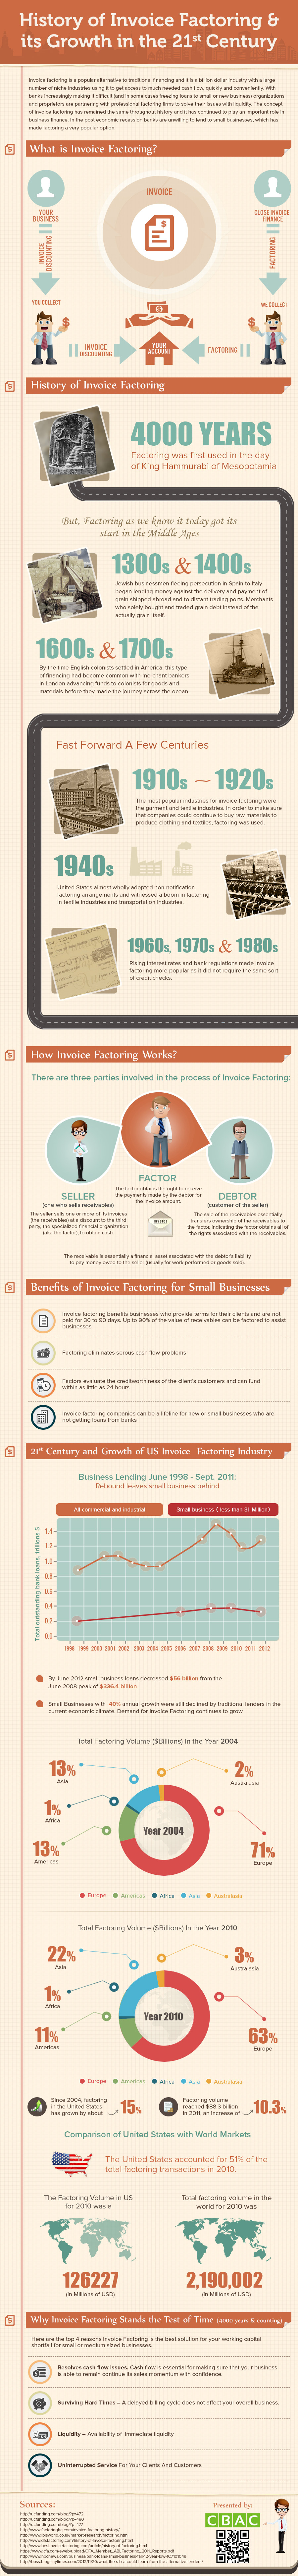 Evolution of Invoice Factoring Infographic